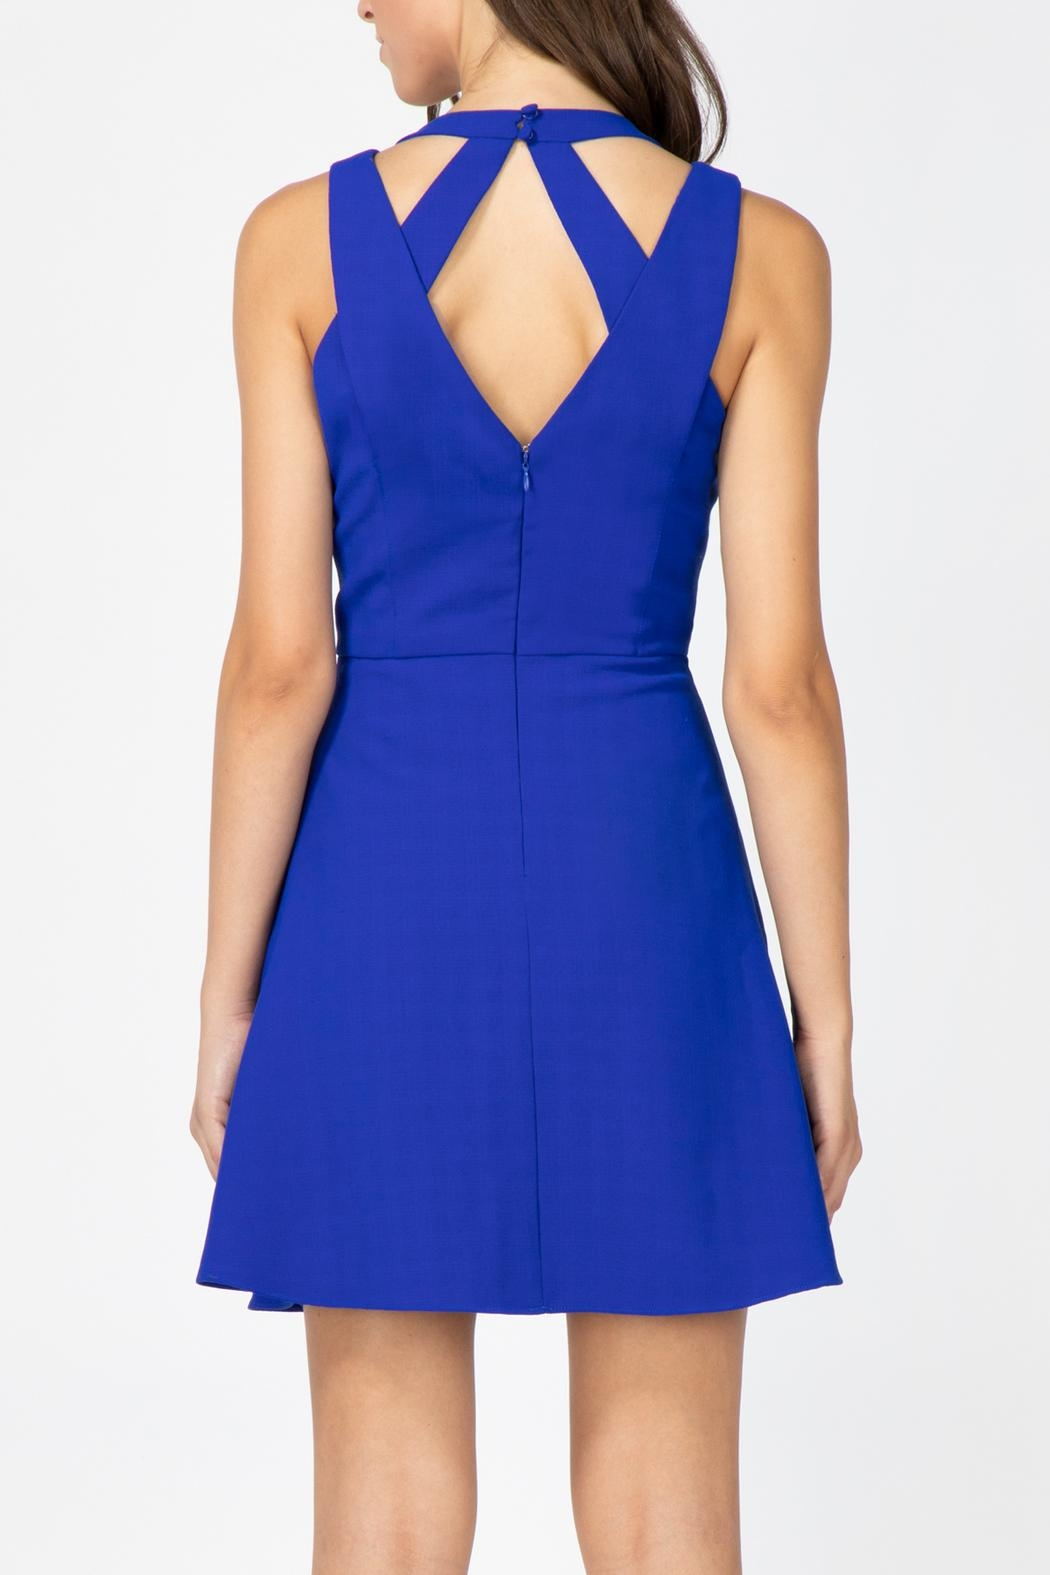 Adelyn Rae Blaine Woven Dress - Side Cropped Image